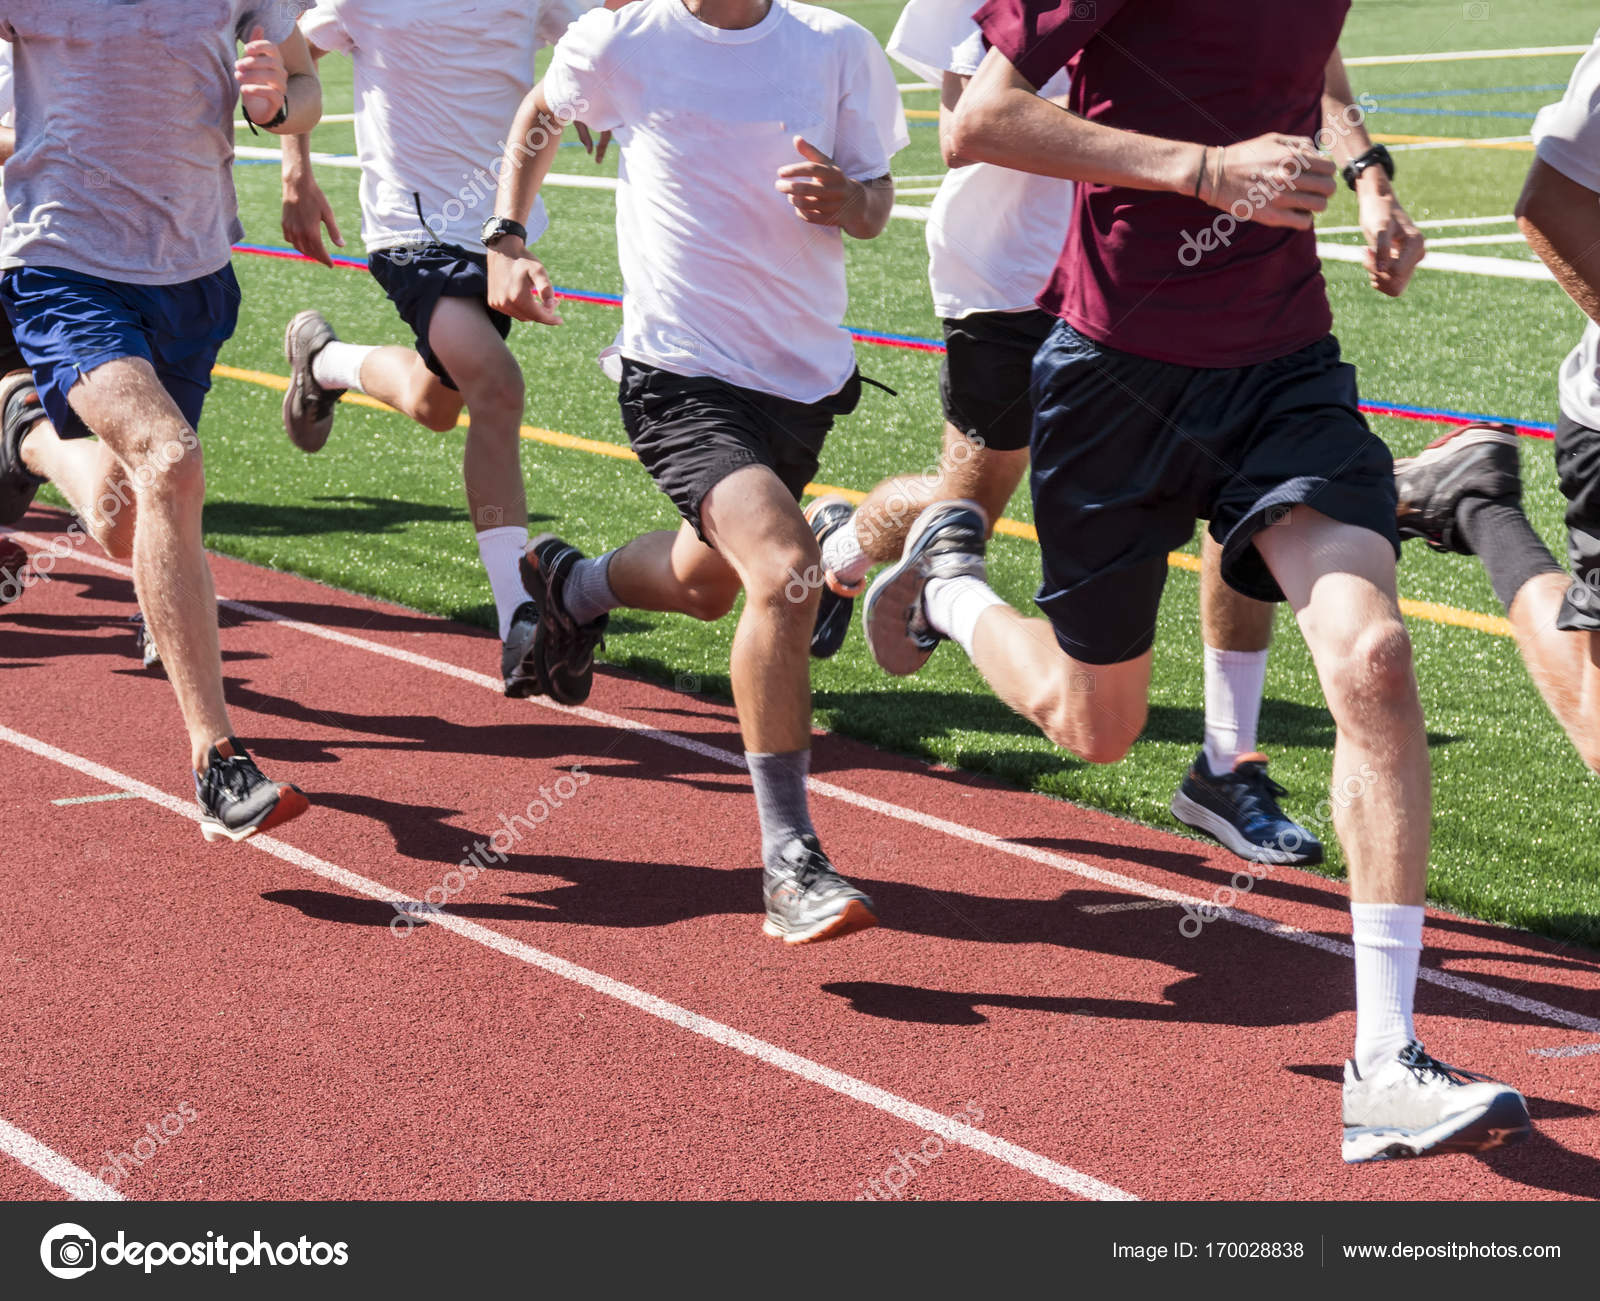 Boys running fast on a track in a group